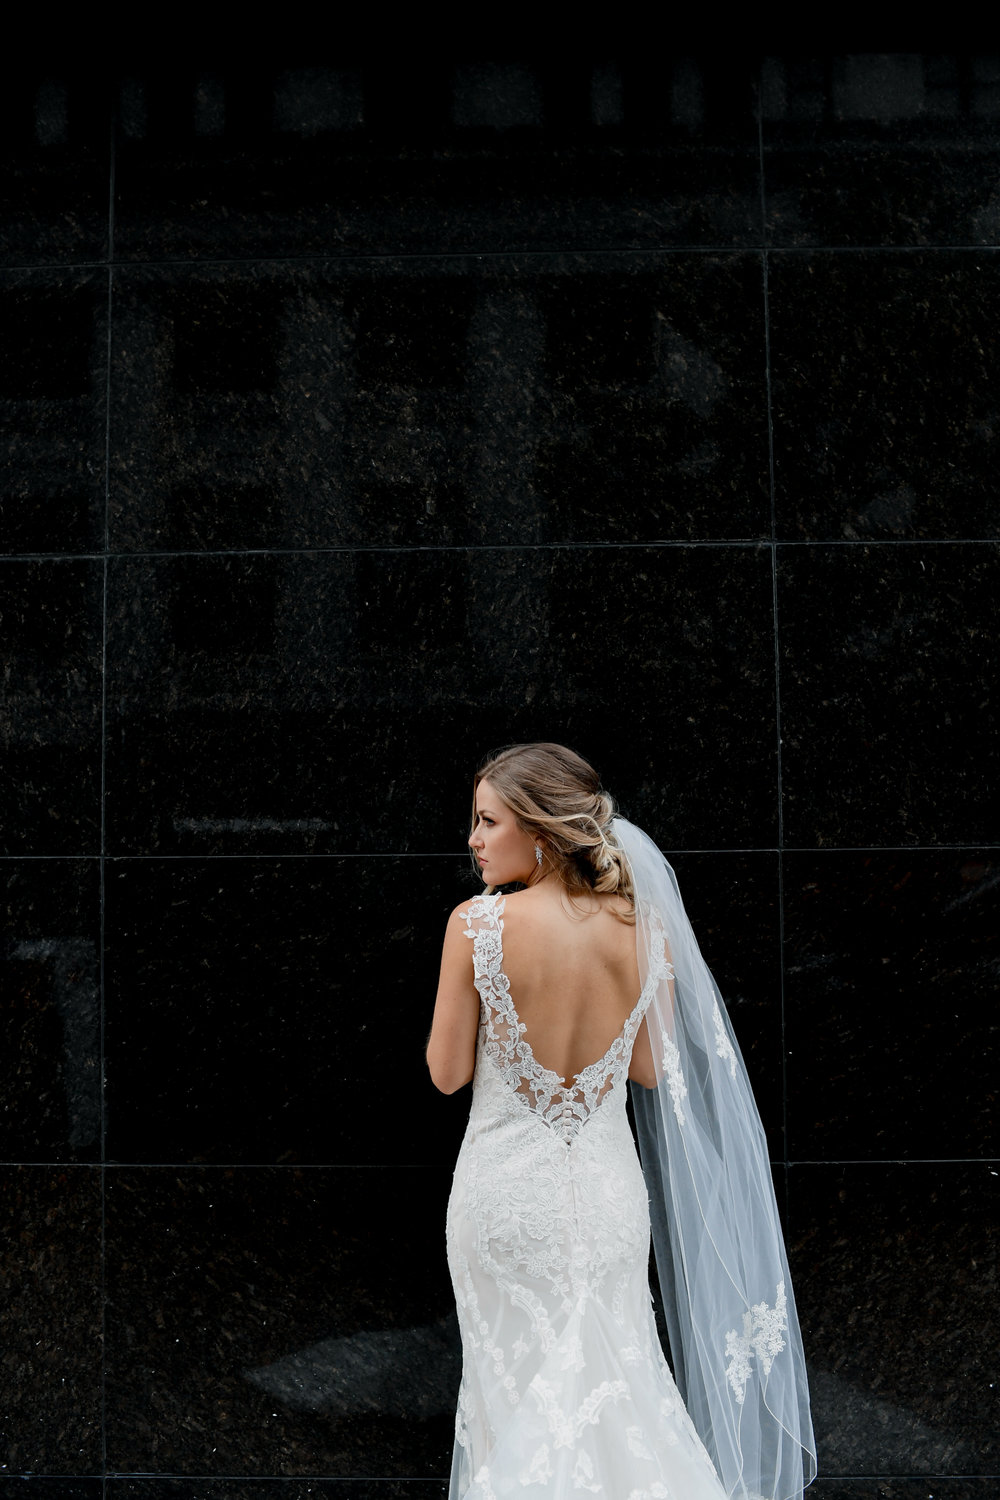 Bride poses showing wedding dress details at Buffalo, NY wedding planned by Exhale Events. Find more wedding inspiration at exhale-events.com!